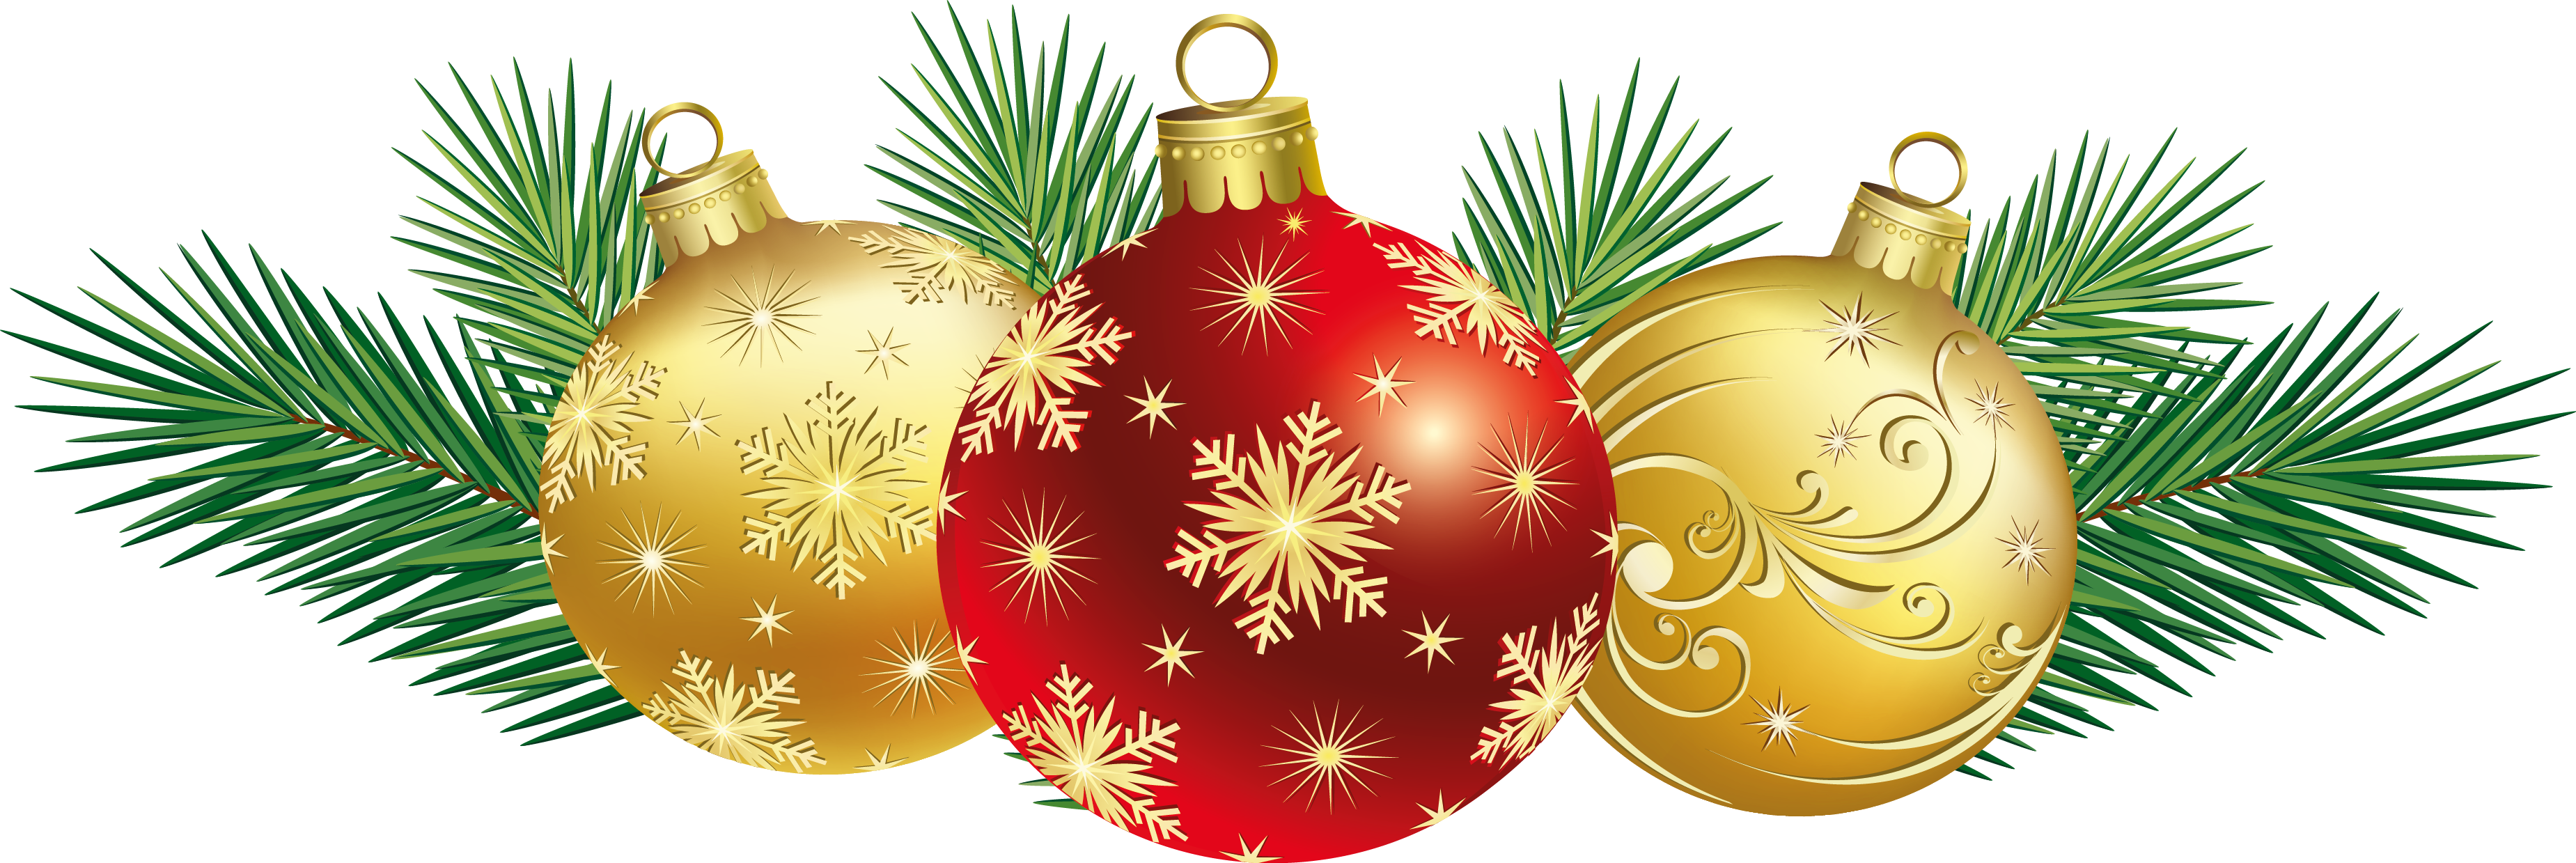 traditional christmas decoration clipart 6.jpg